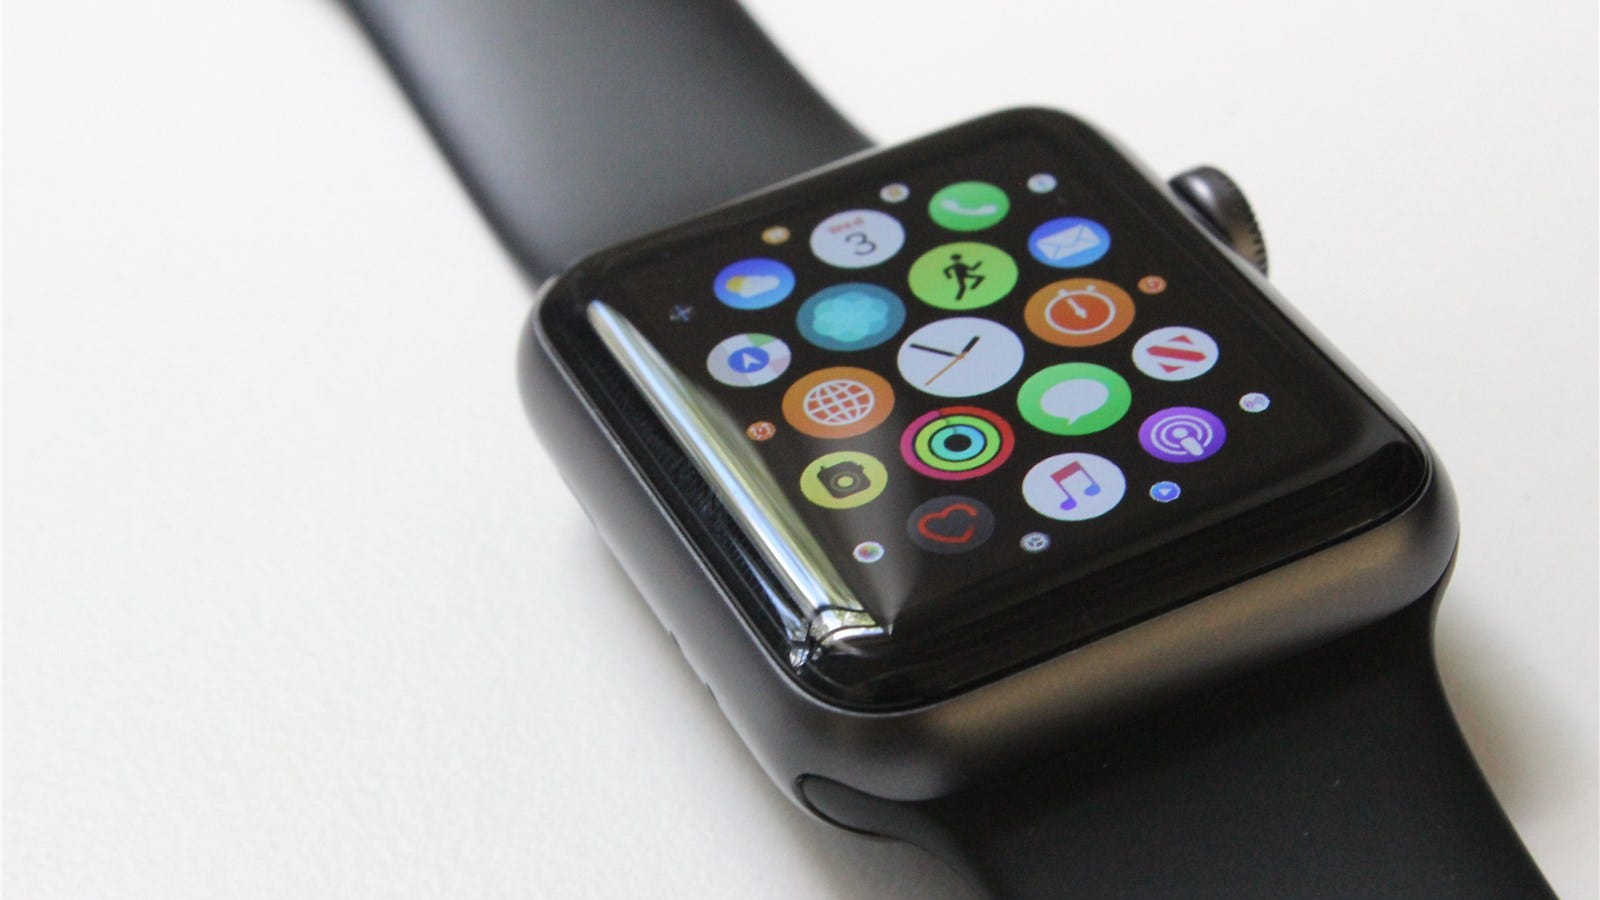 Apple Watch Series 3 on the apps screen